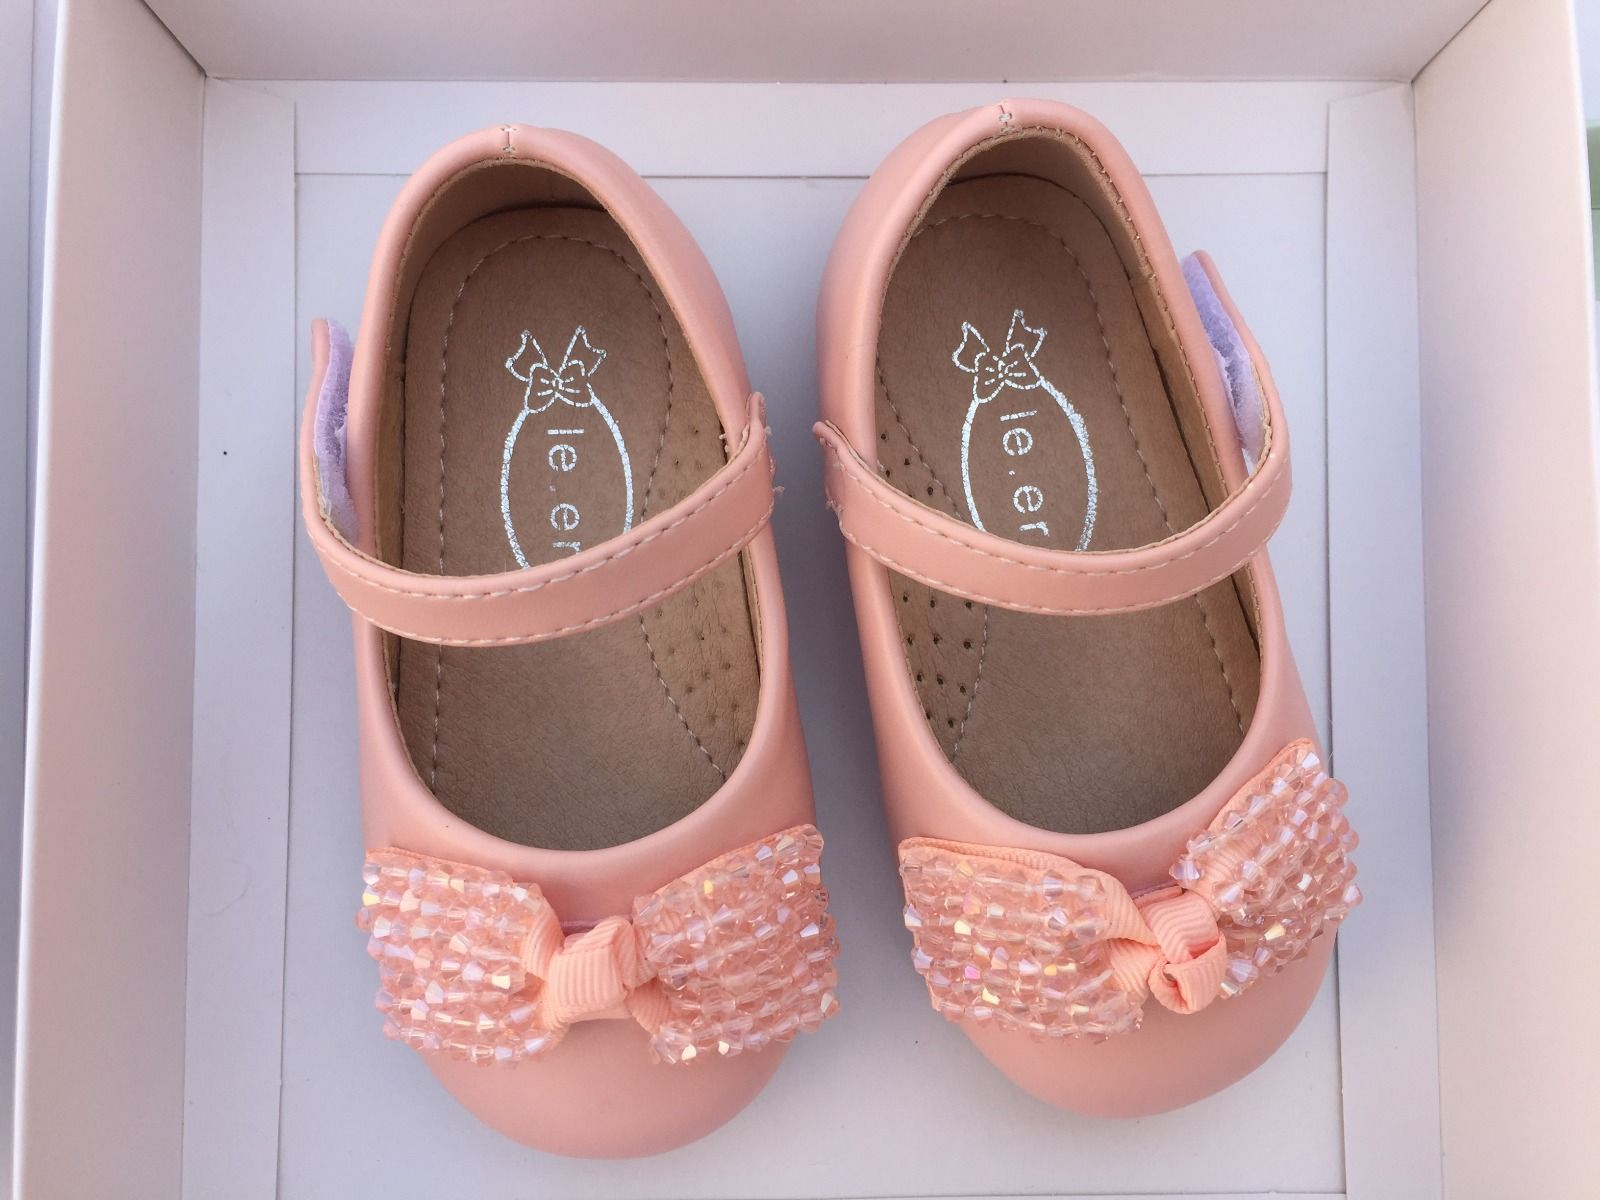 BABY GIRL SHOES IN PINK (1 YEAR TO 3.5